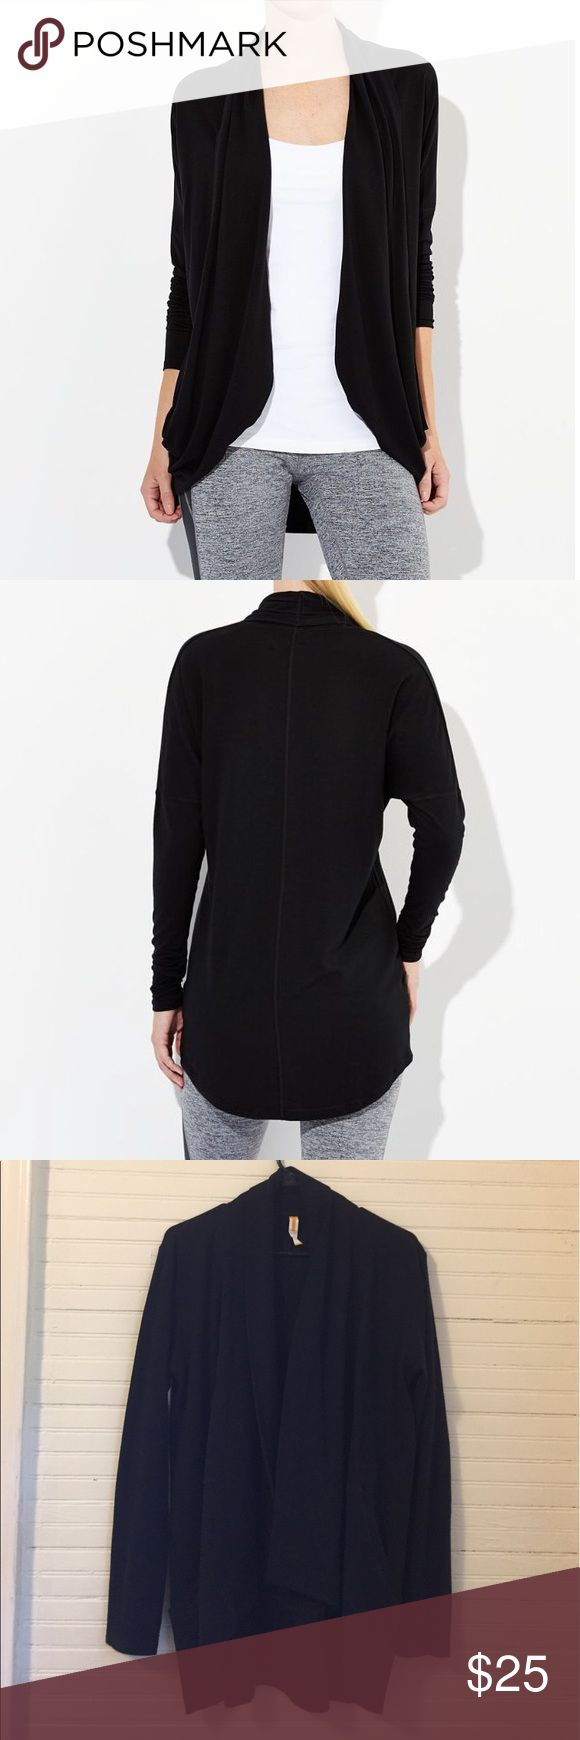 Lucy Athletic Brand Enlightening Wrap A soft, long overcoat for athletic wear! Large pockets are a huge plus. Like new condition. Lucy Jackets & Coats